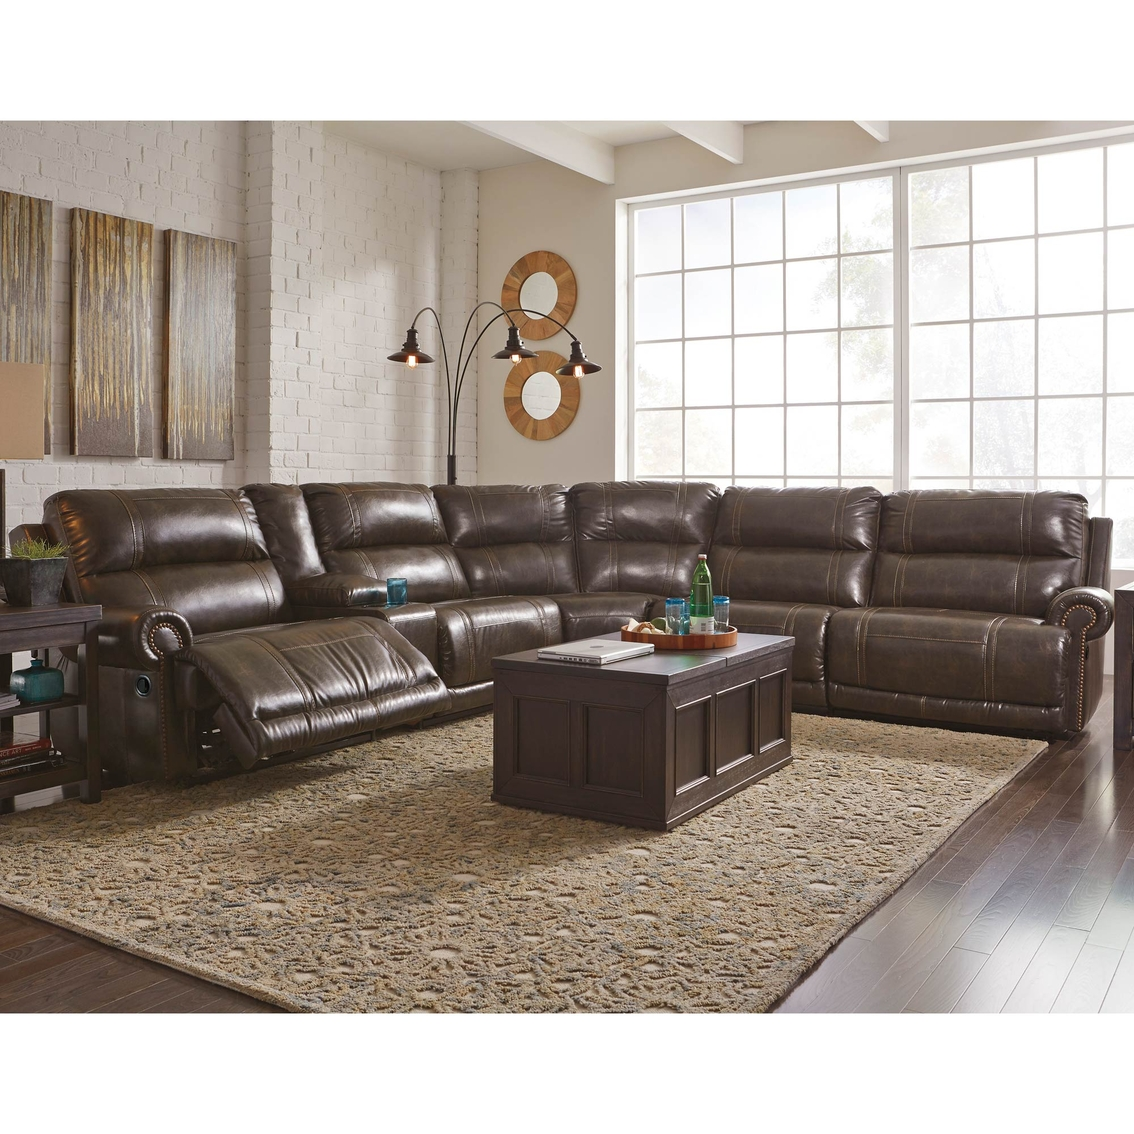 Can You Buy Ashley Furniture Online: Ashley Dak 6 Pc. Power Reclining Sectional